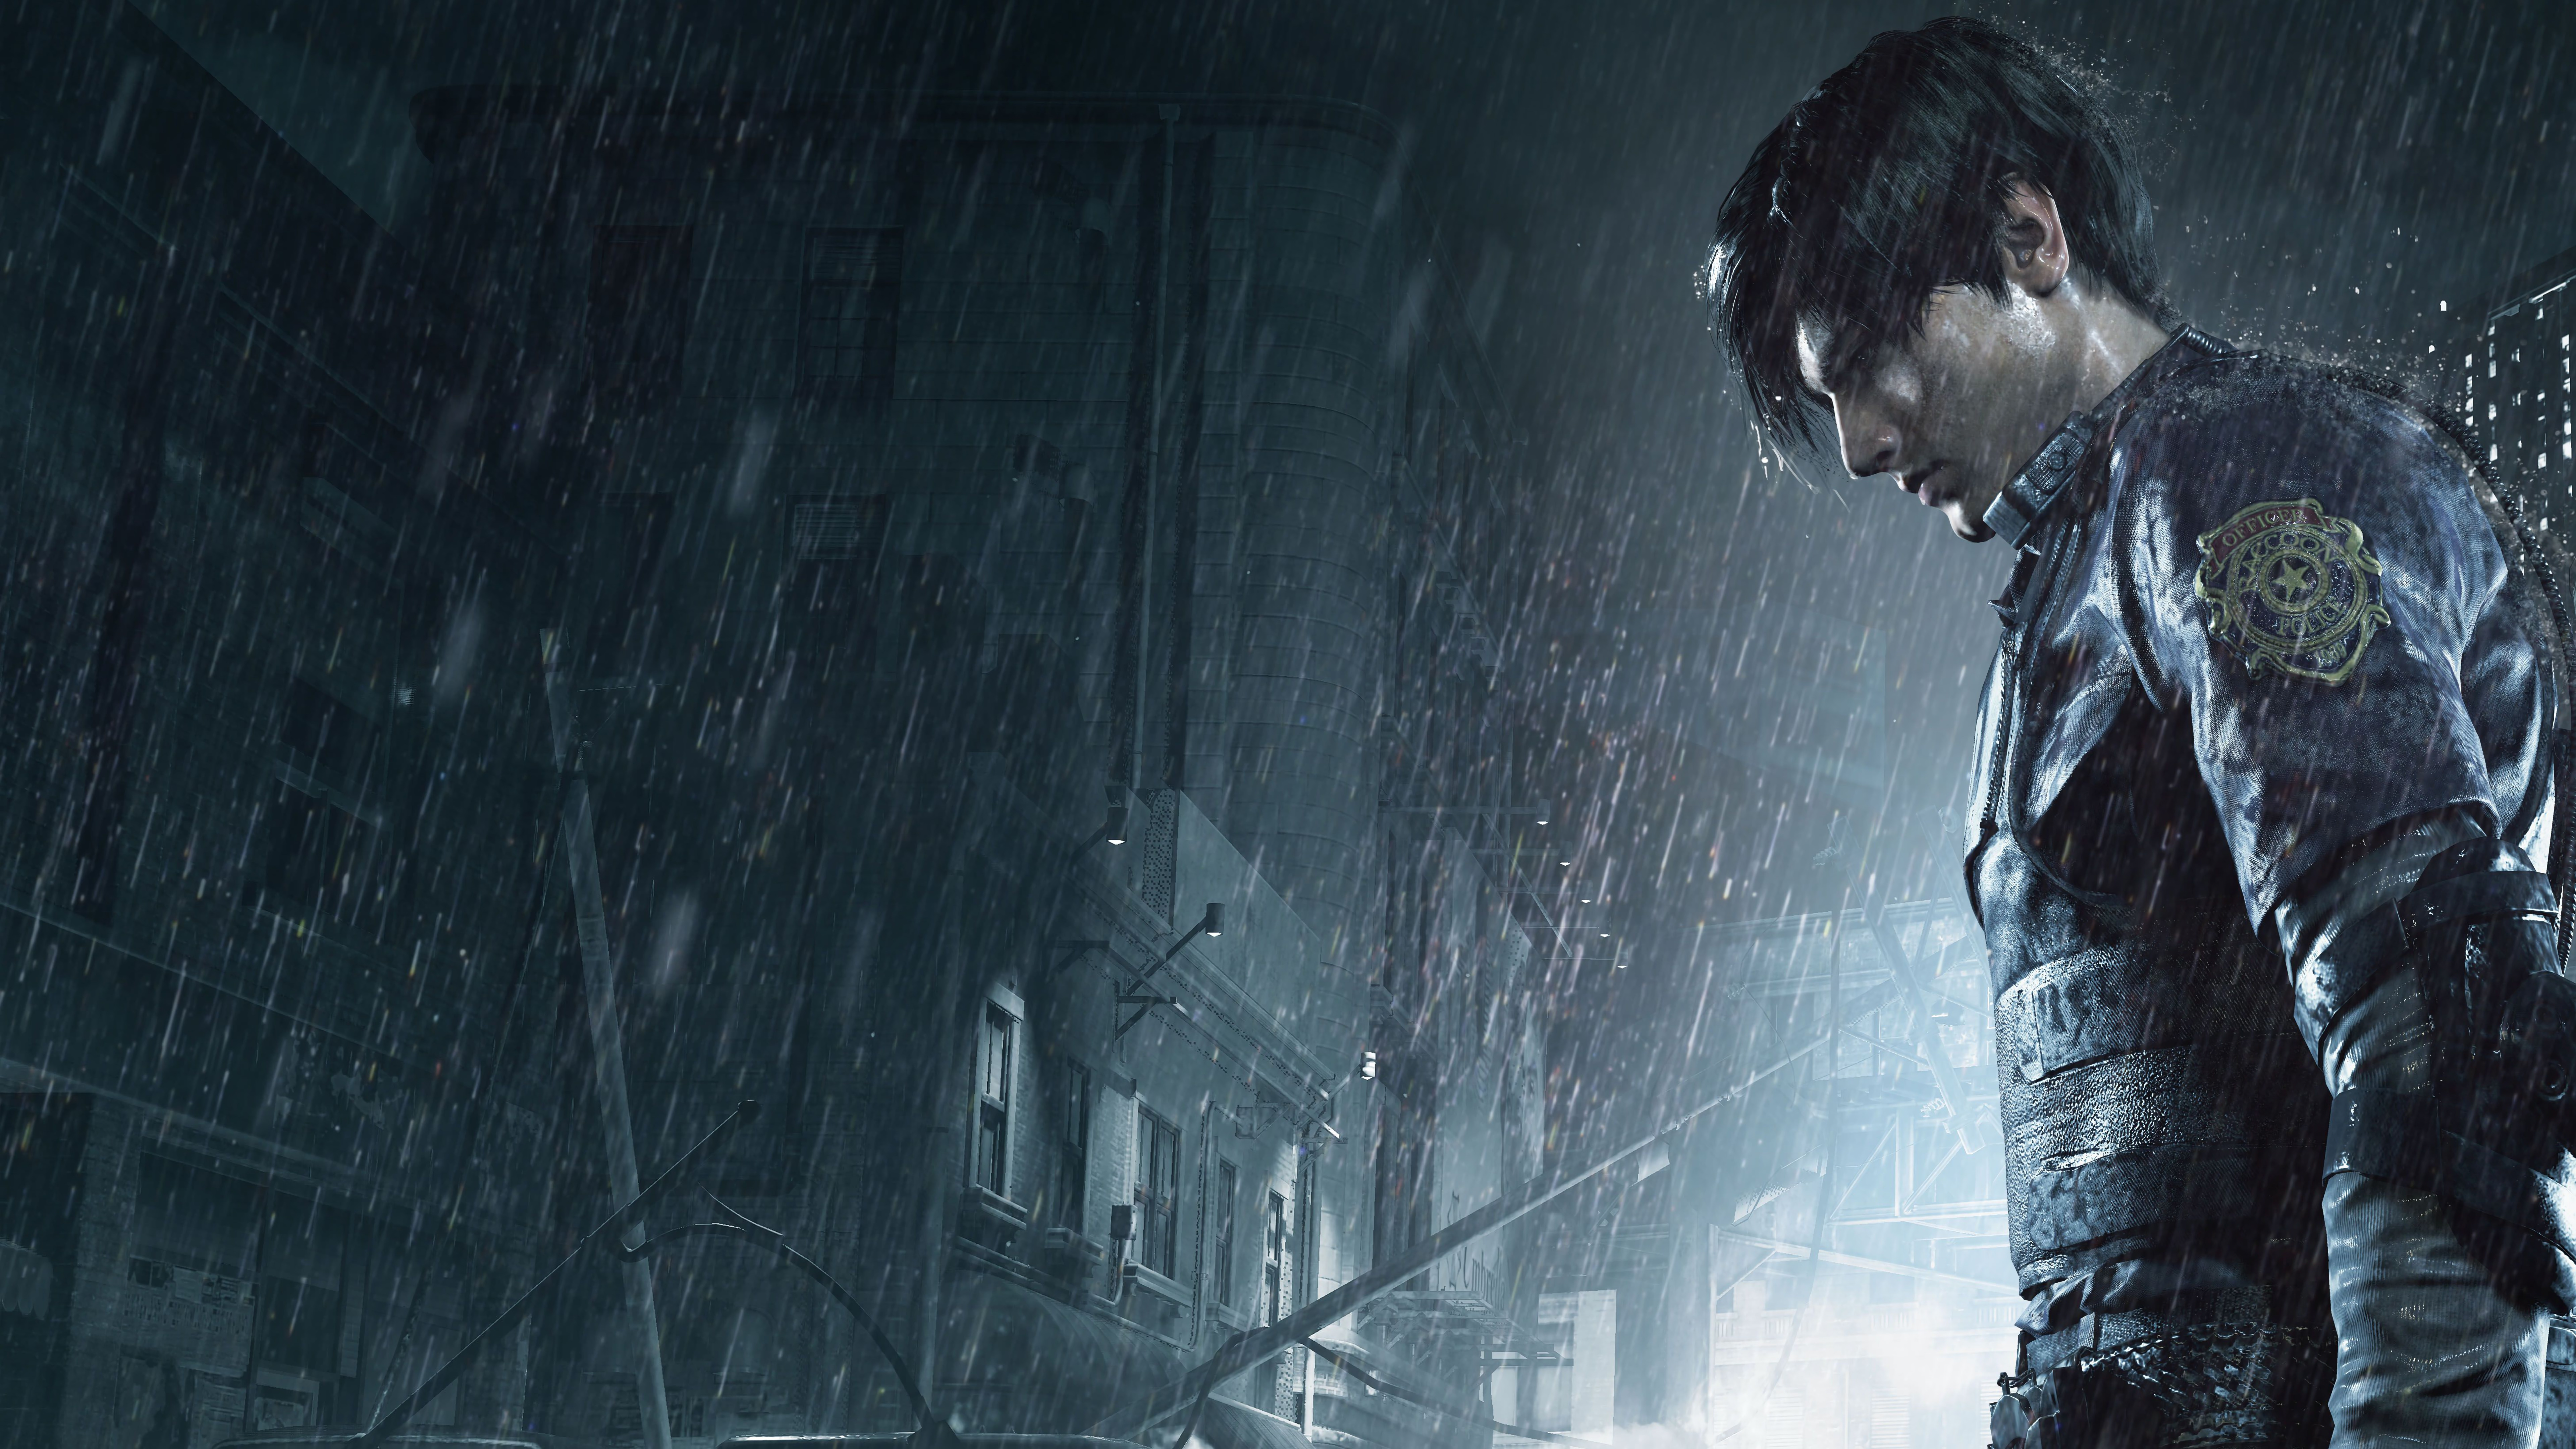 Leon Kennedy Resident Evil 2 Hd Games 4k Wallpapers Images